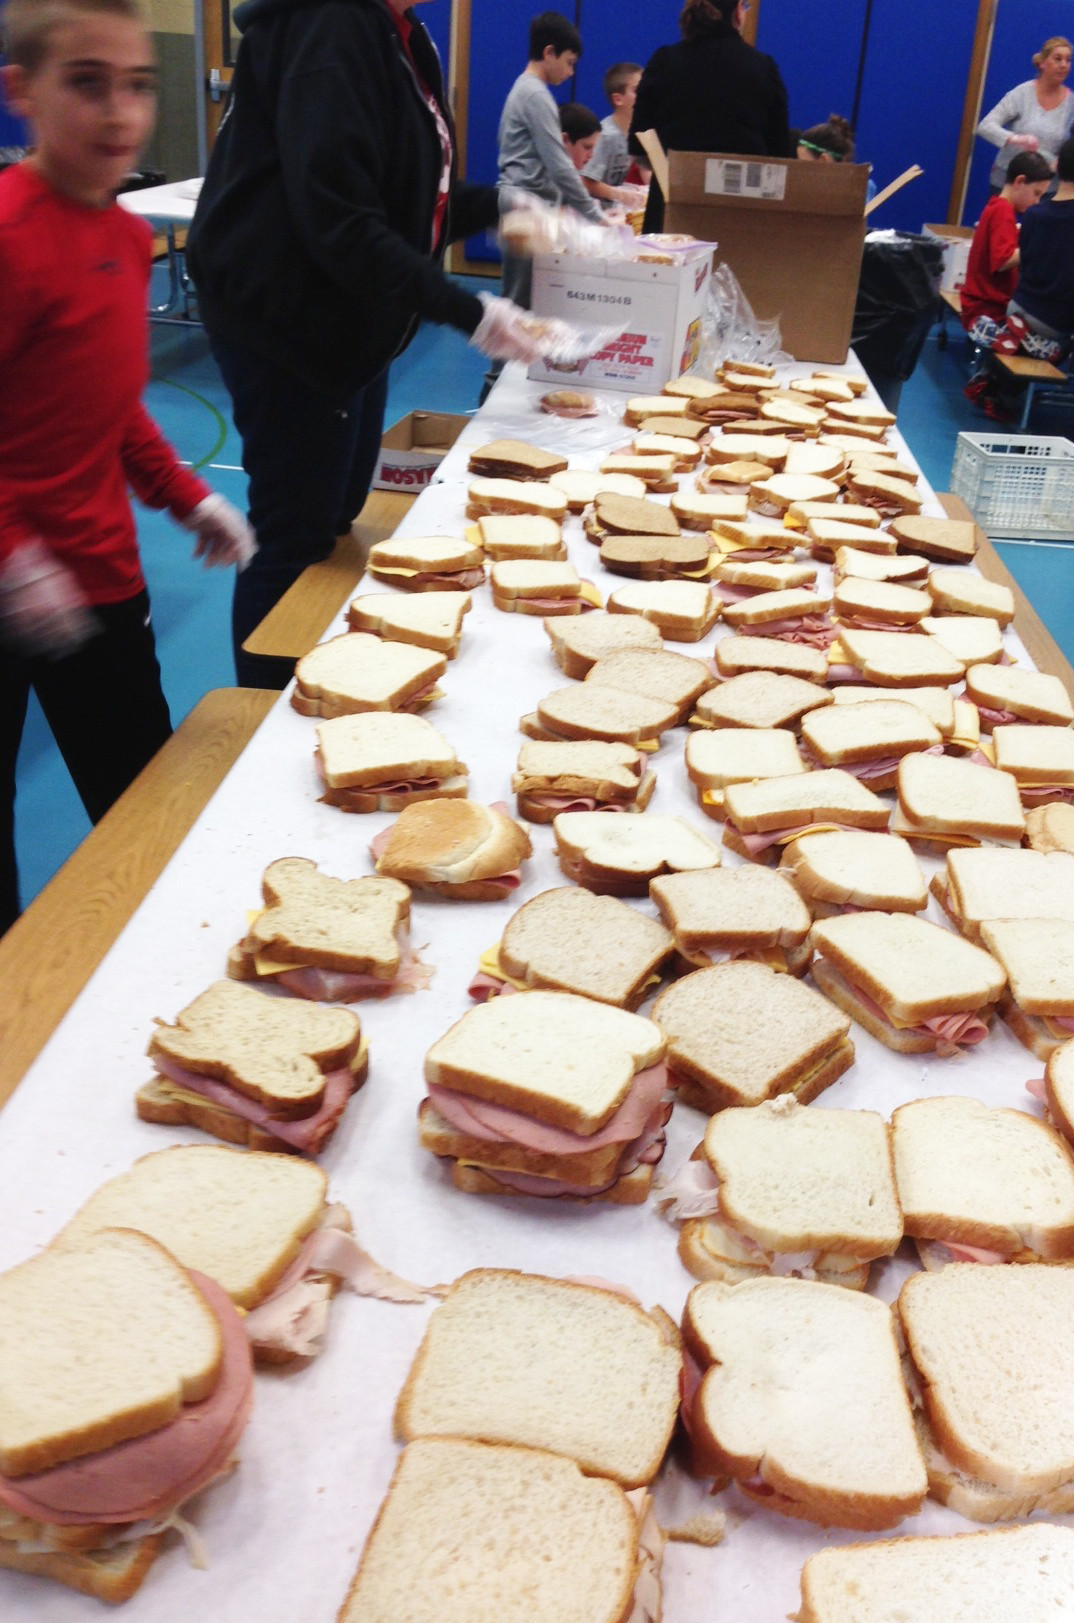 Sandwiches all lined up and ready for packaging. The sandwiches were sent to the River Fund Shelter in Richmond Hill, Queens.